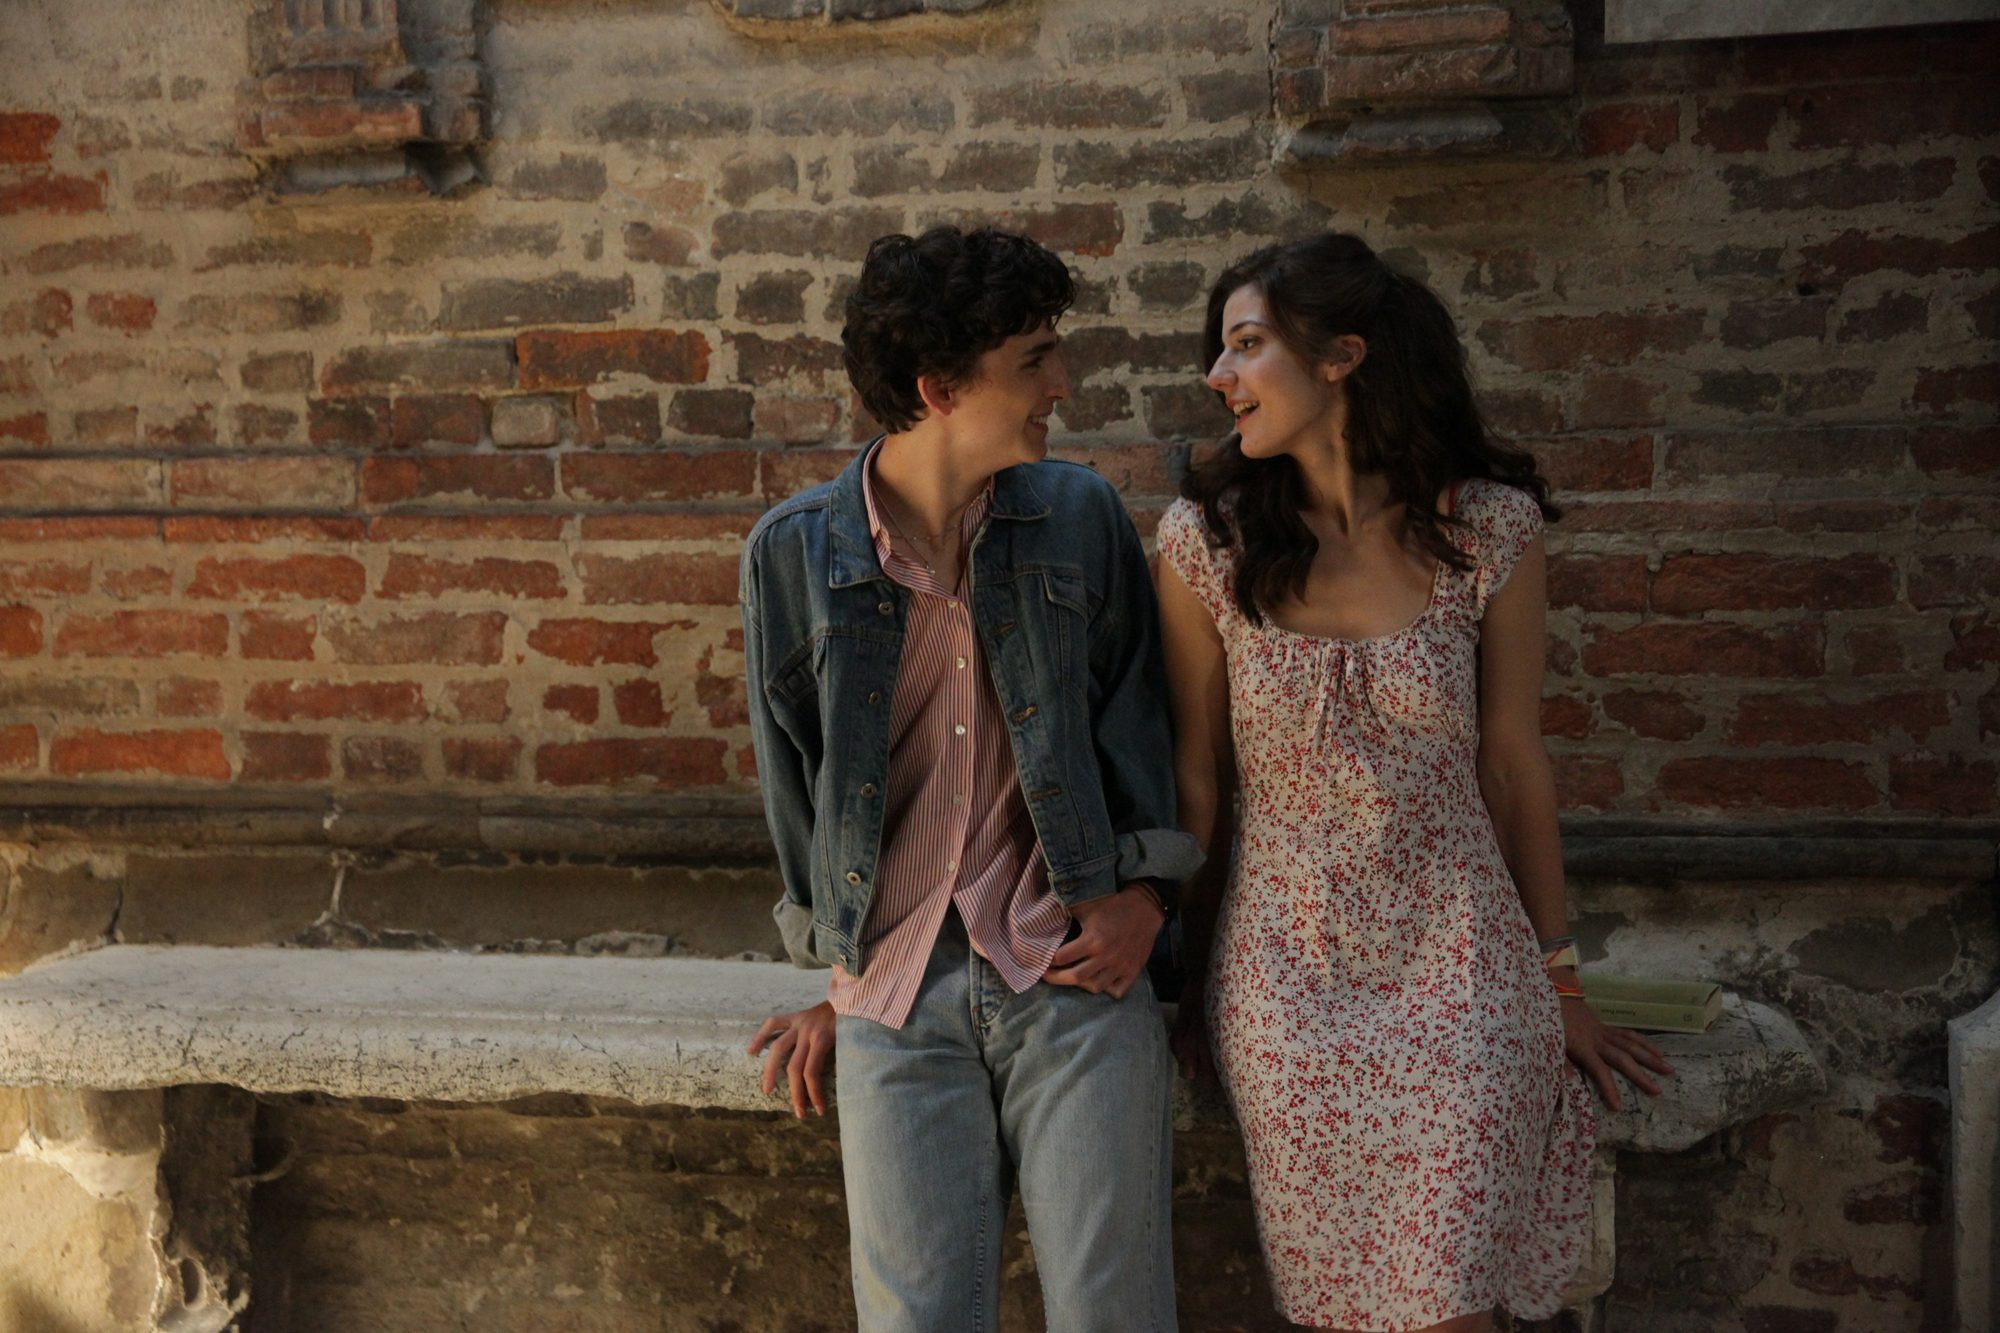 'Call me by your name': Presenta su tráiler en castellano y selección de fotos